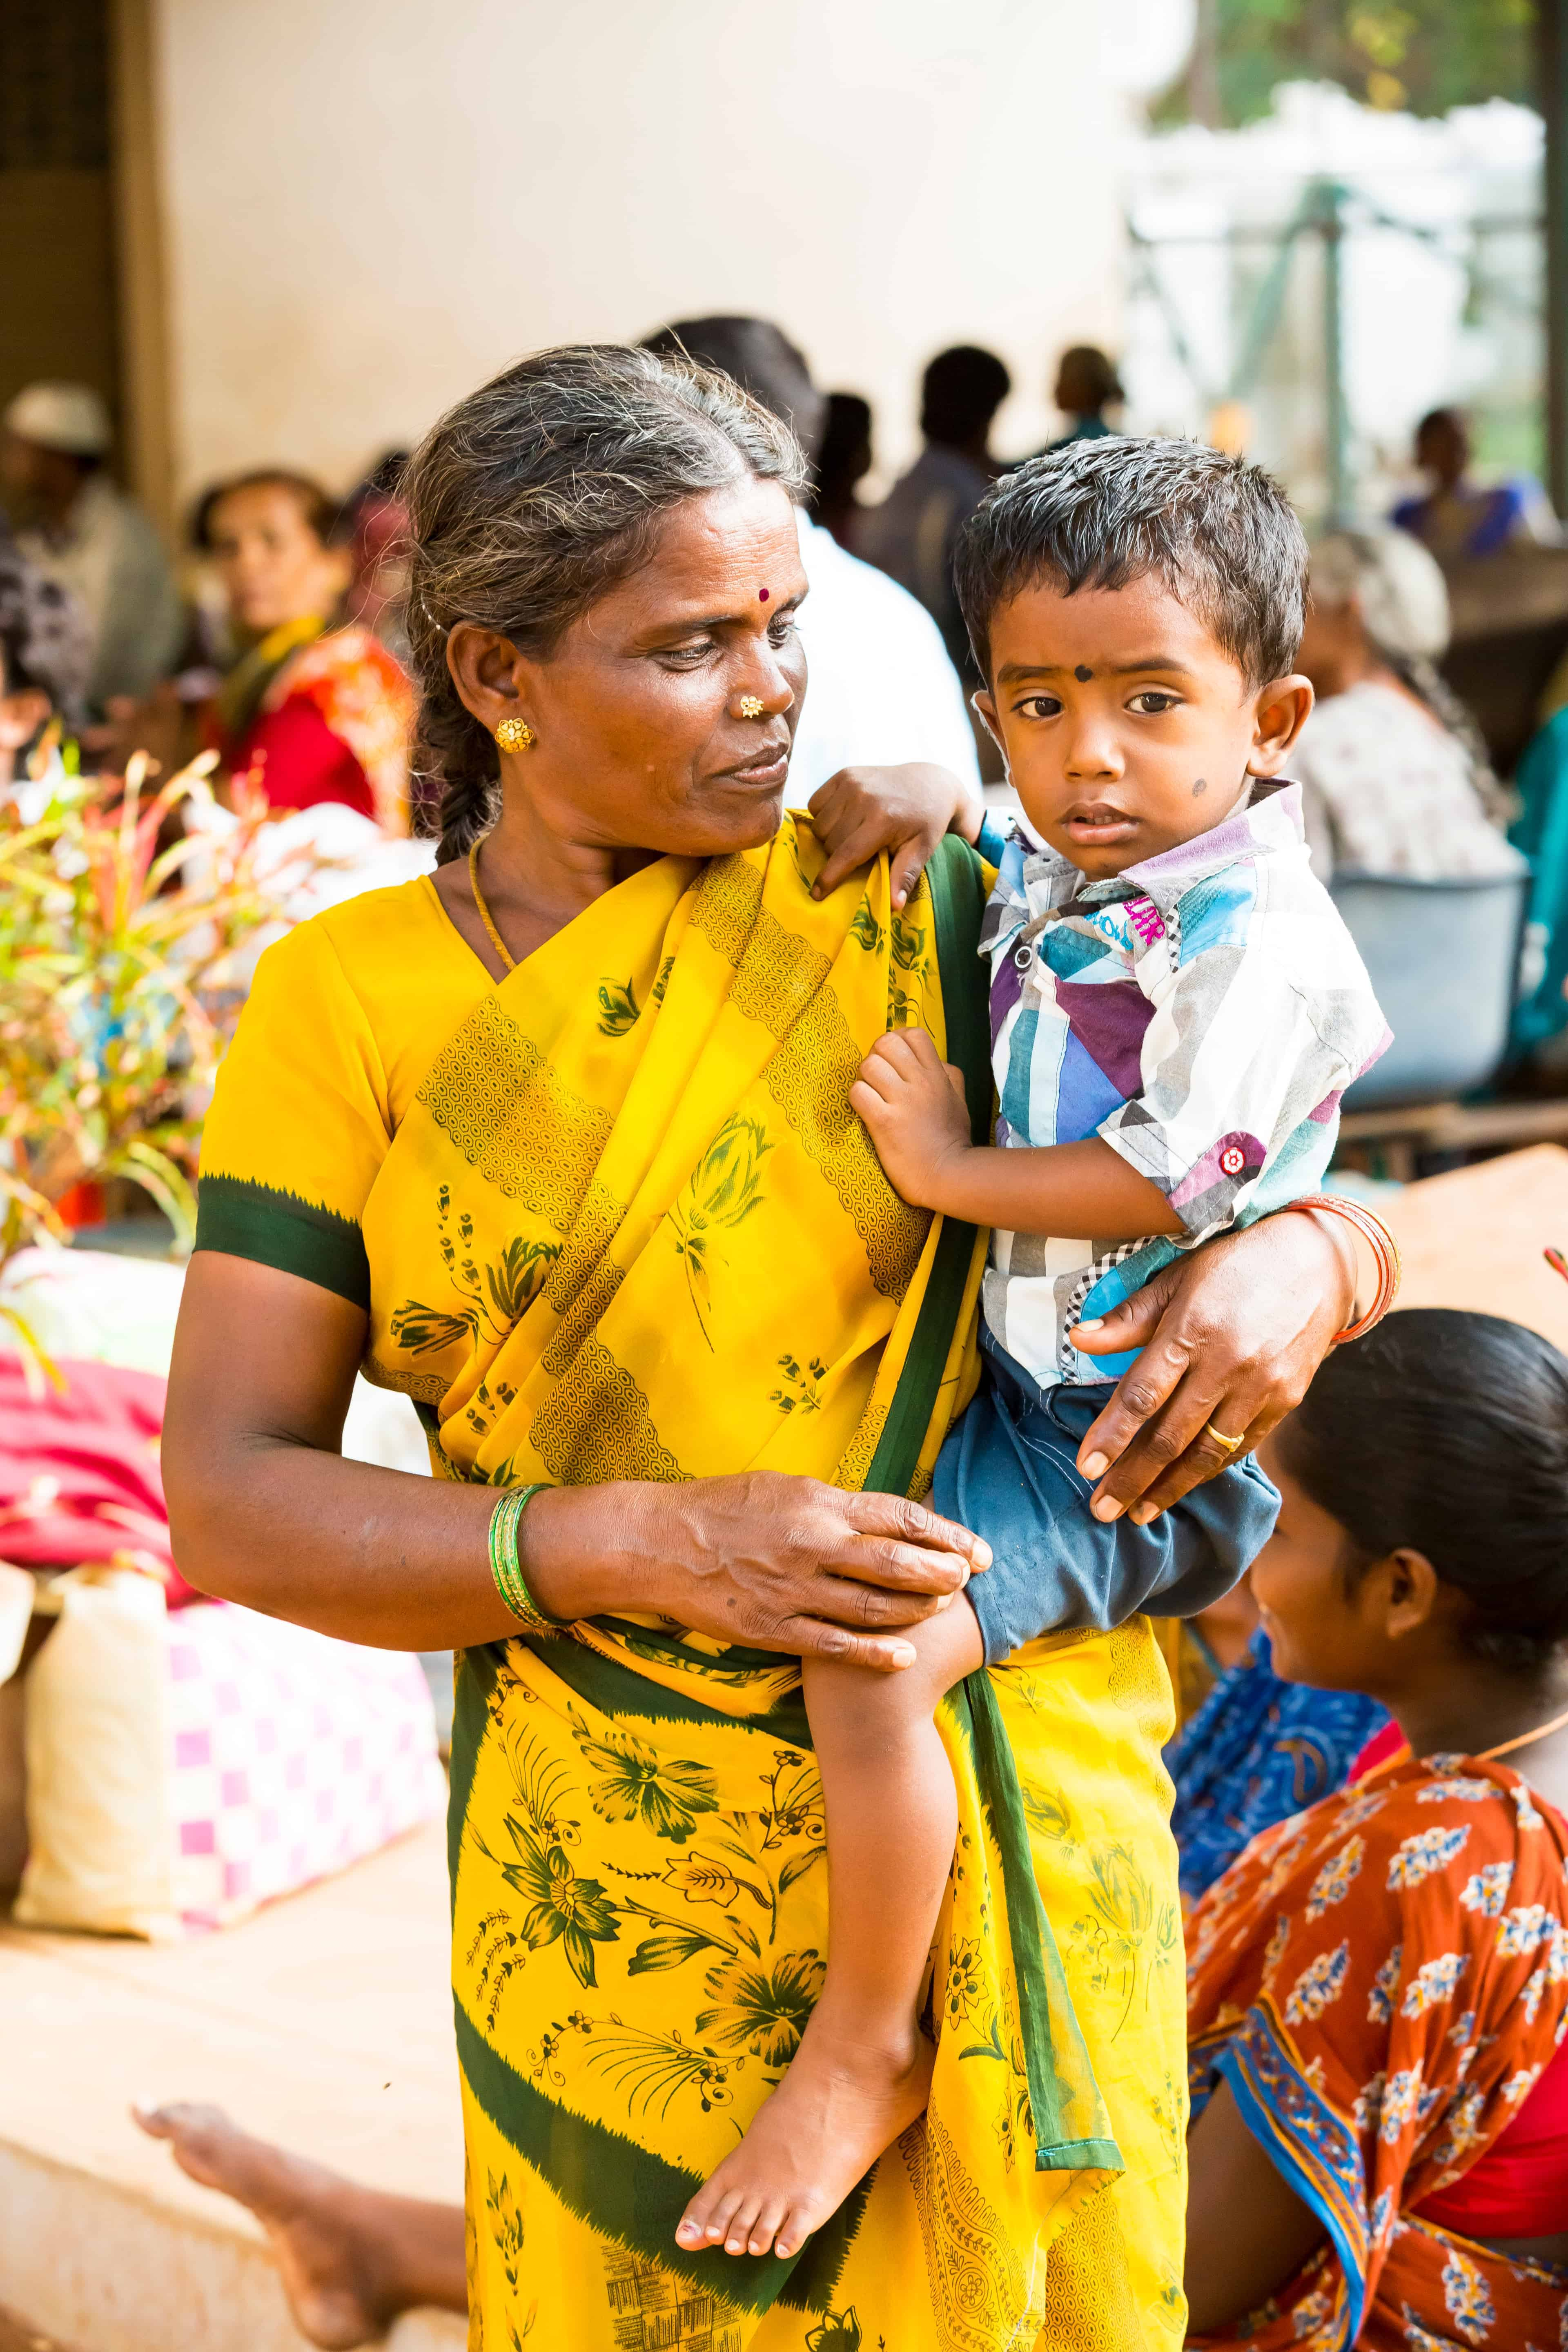 Weekly Digest: CDDEP publishes the world's largest contact tracing study from India in Science; Association of SARS-CoV-2 Test Status and Pregnancy; Parental self-medication with antibiotics for children promotes antibiotic over-prescribing.